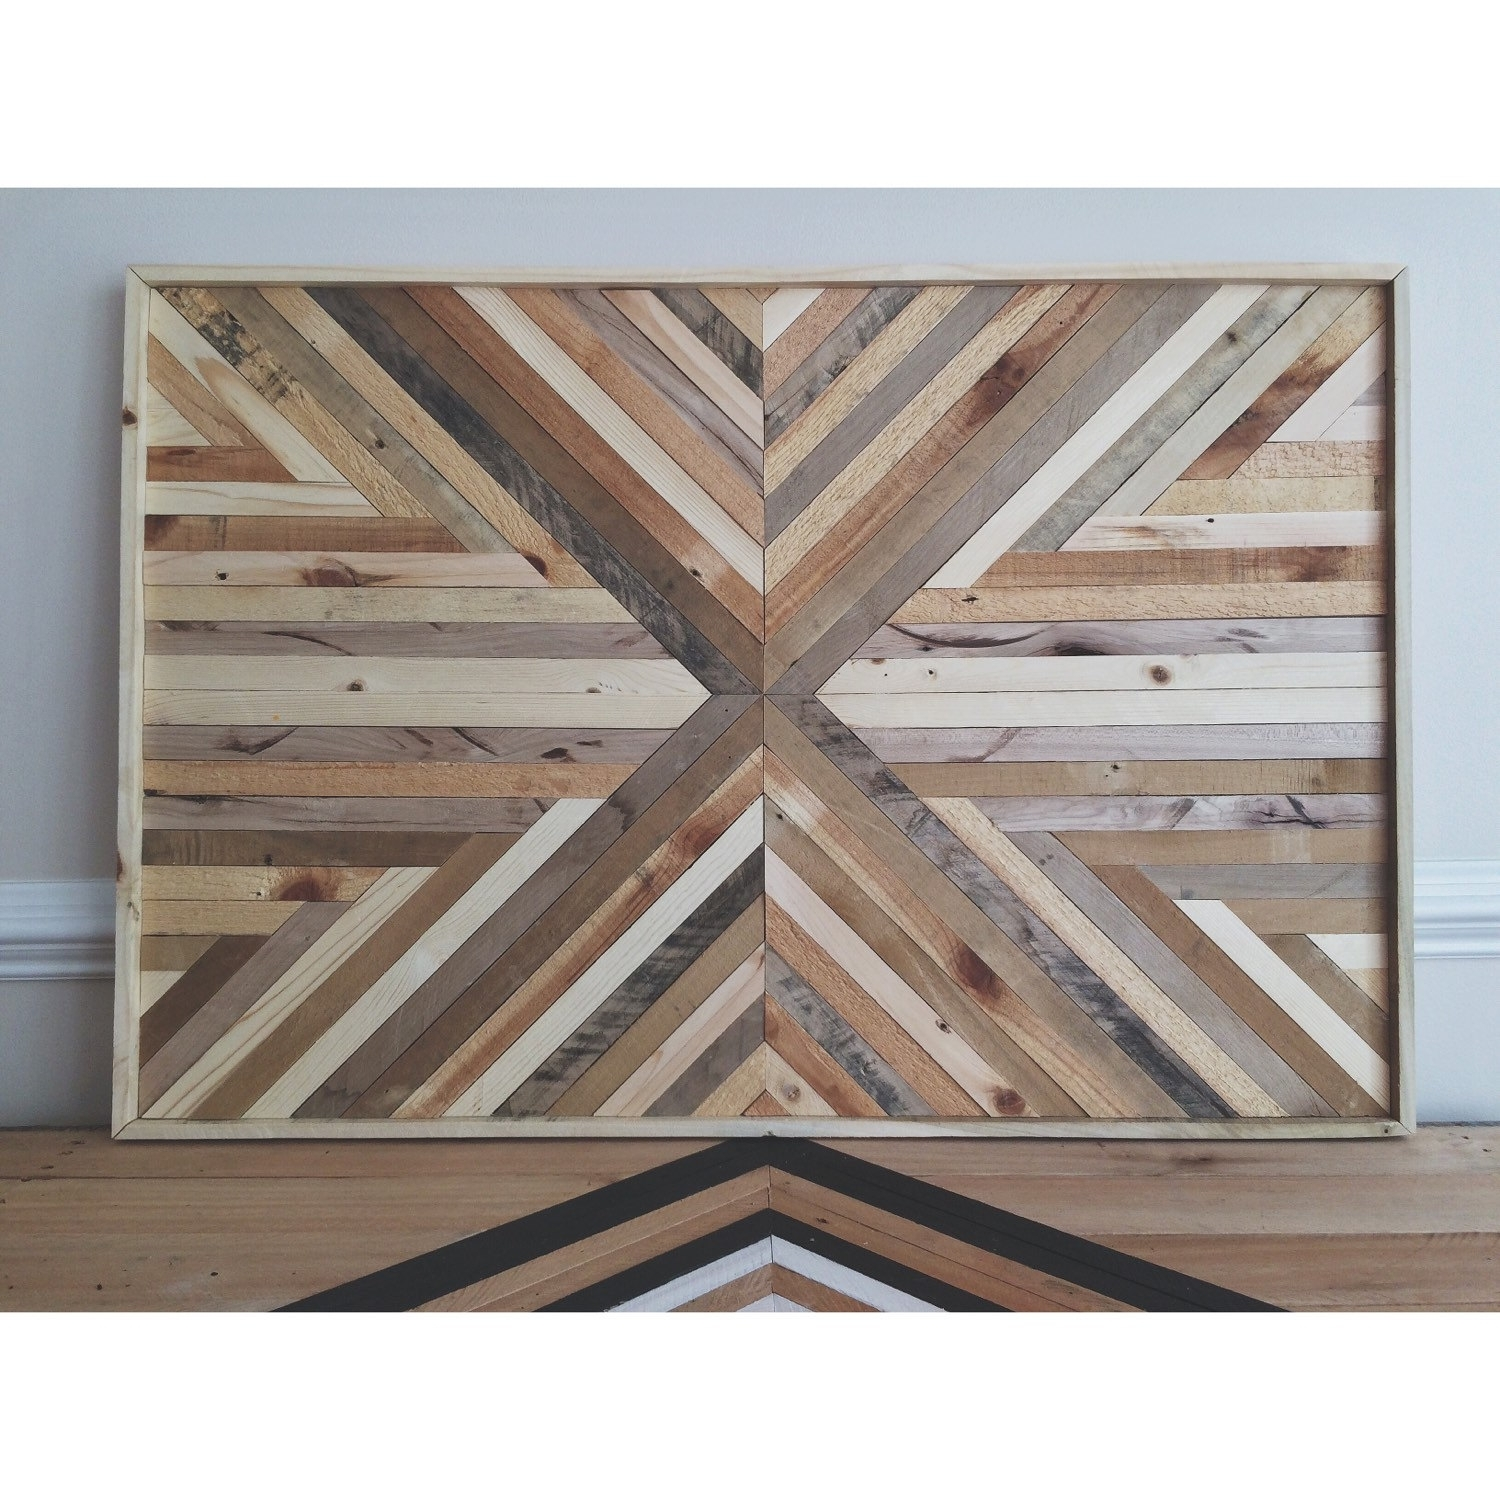 Wall Art Reclaimed Wood – Amthuchanoi Inside Most Popular Reclaimed Wood Wall Art (Gallery 4 of 15)